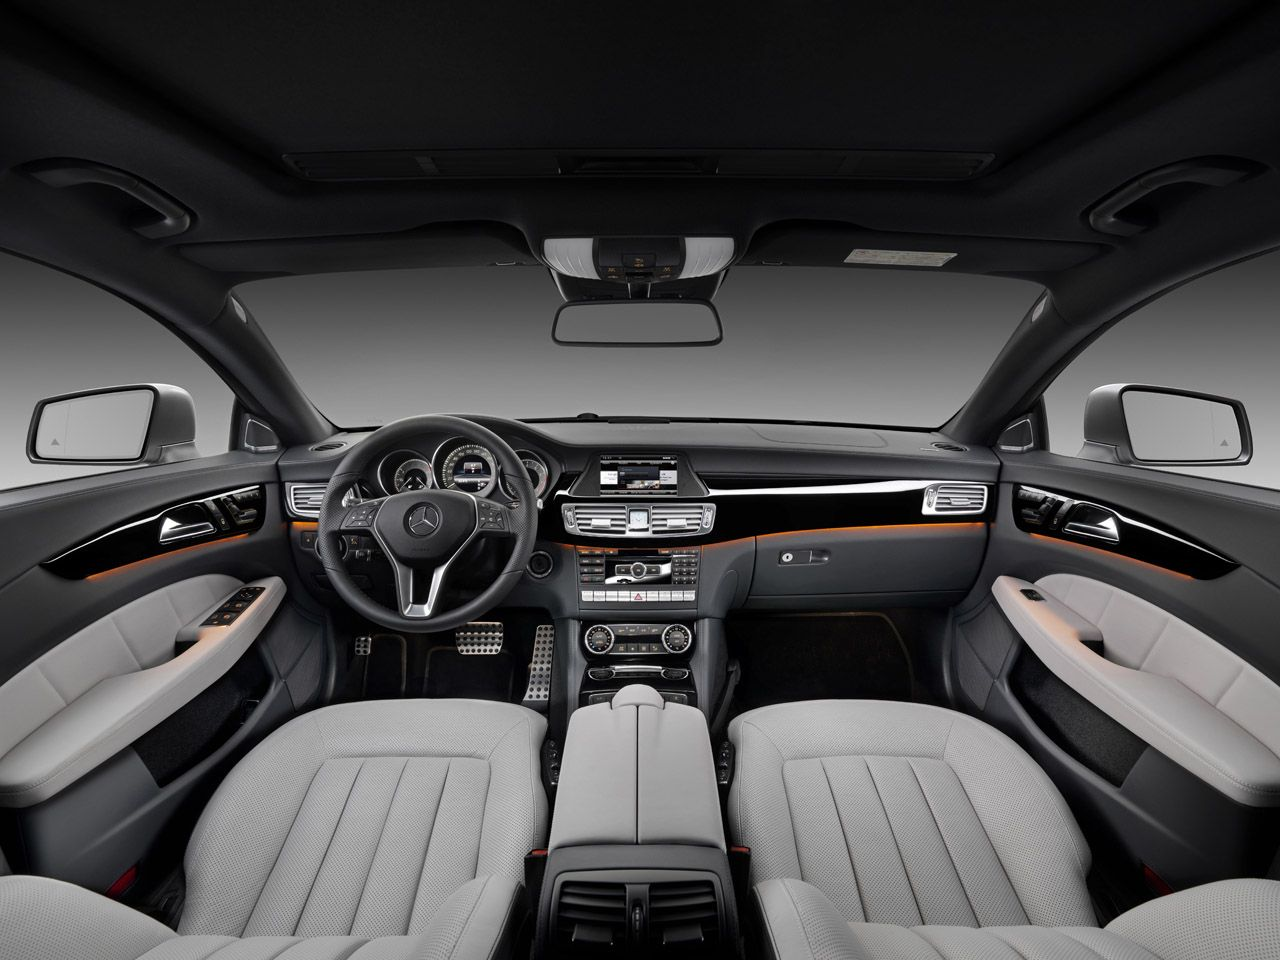 Mercedes Benz Cls63 Amg Shooting Brake Interior Http